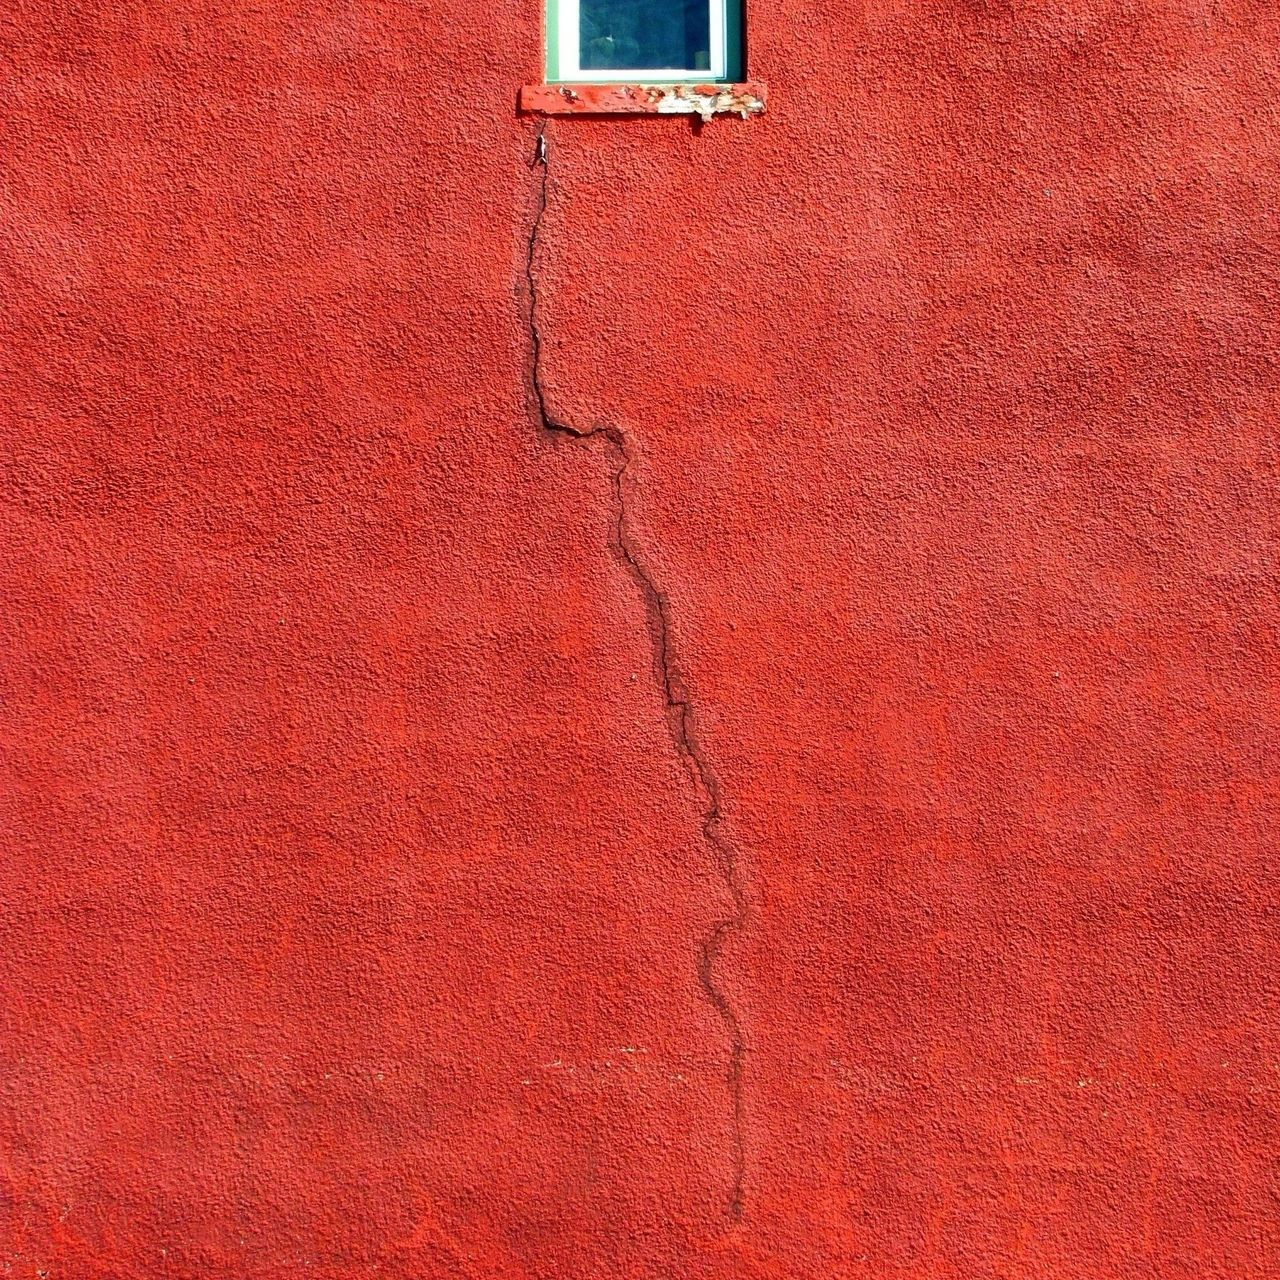 Backgrounds Building Building Exterior Close-up Color Copy Space Day Full Frame Minimal Minimalism Minimalist Architecture No People Outdoors Red Textured  Window